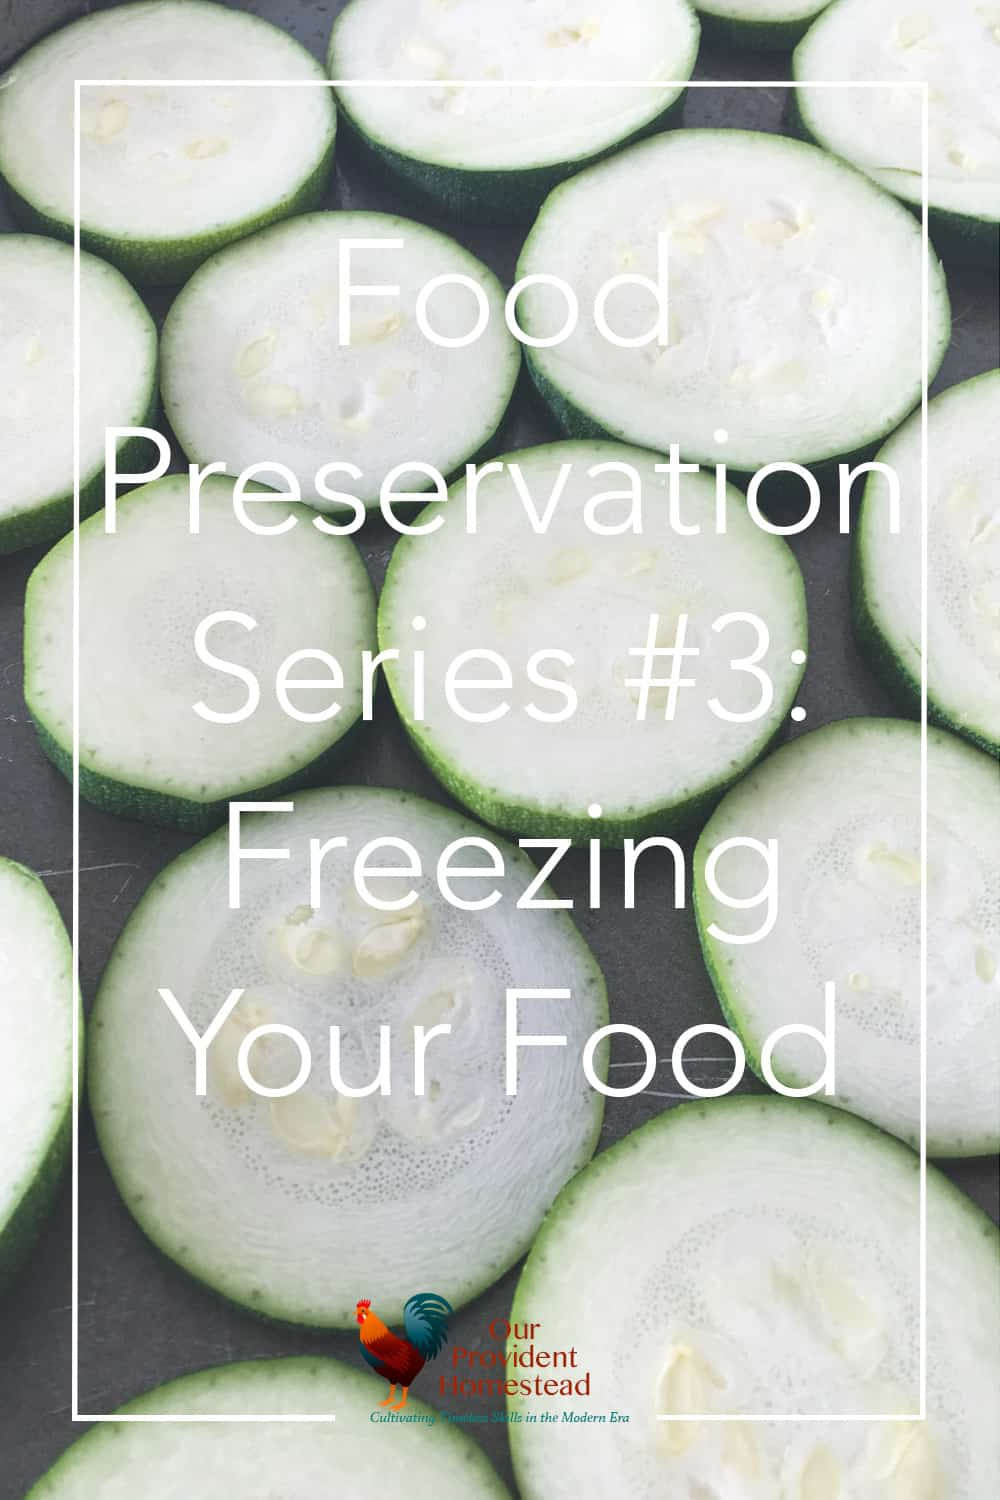 How do you preserve your food at home? Click here to discuss freezing as one way to preserve food in our four part preservation series. Freezing Food | Food Preservation | Saving the Harvest